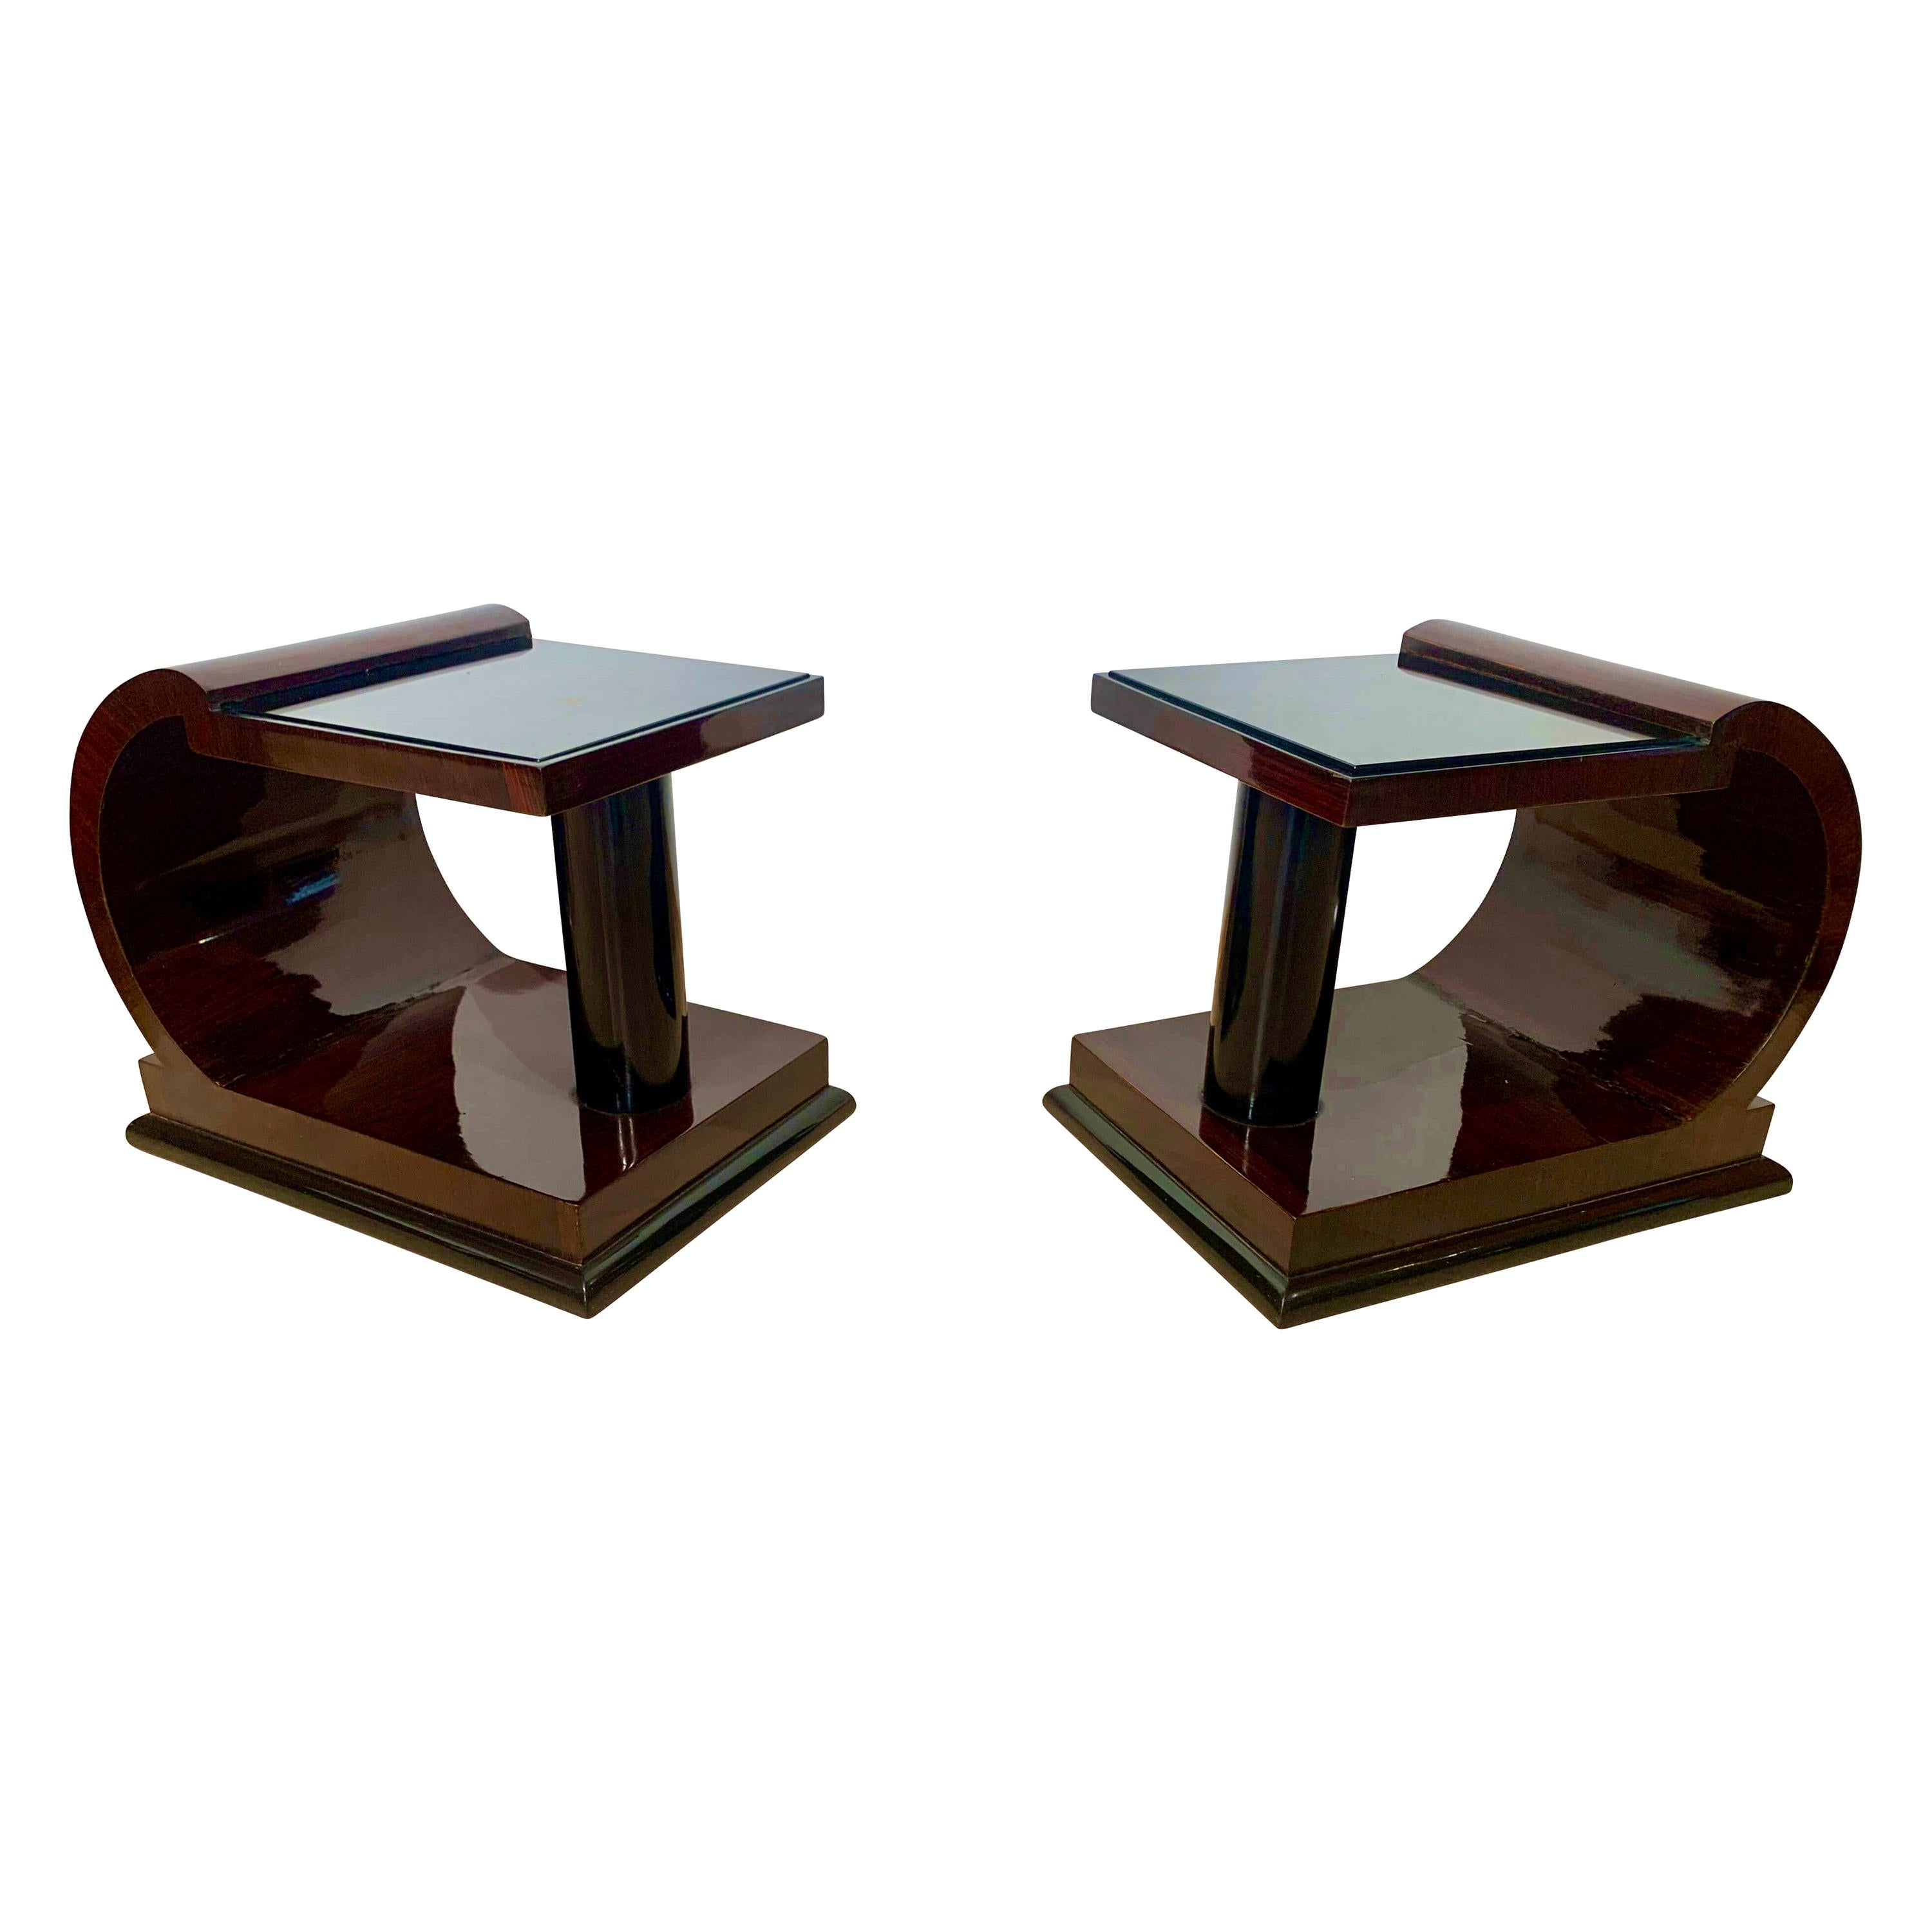 Pair of Art Deco Side Tables, Rosewood, Ebonized and Glass, France, circa 1930